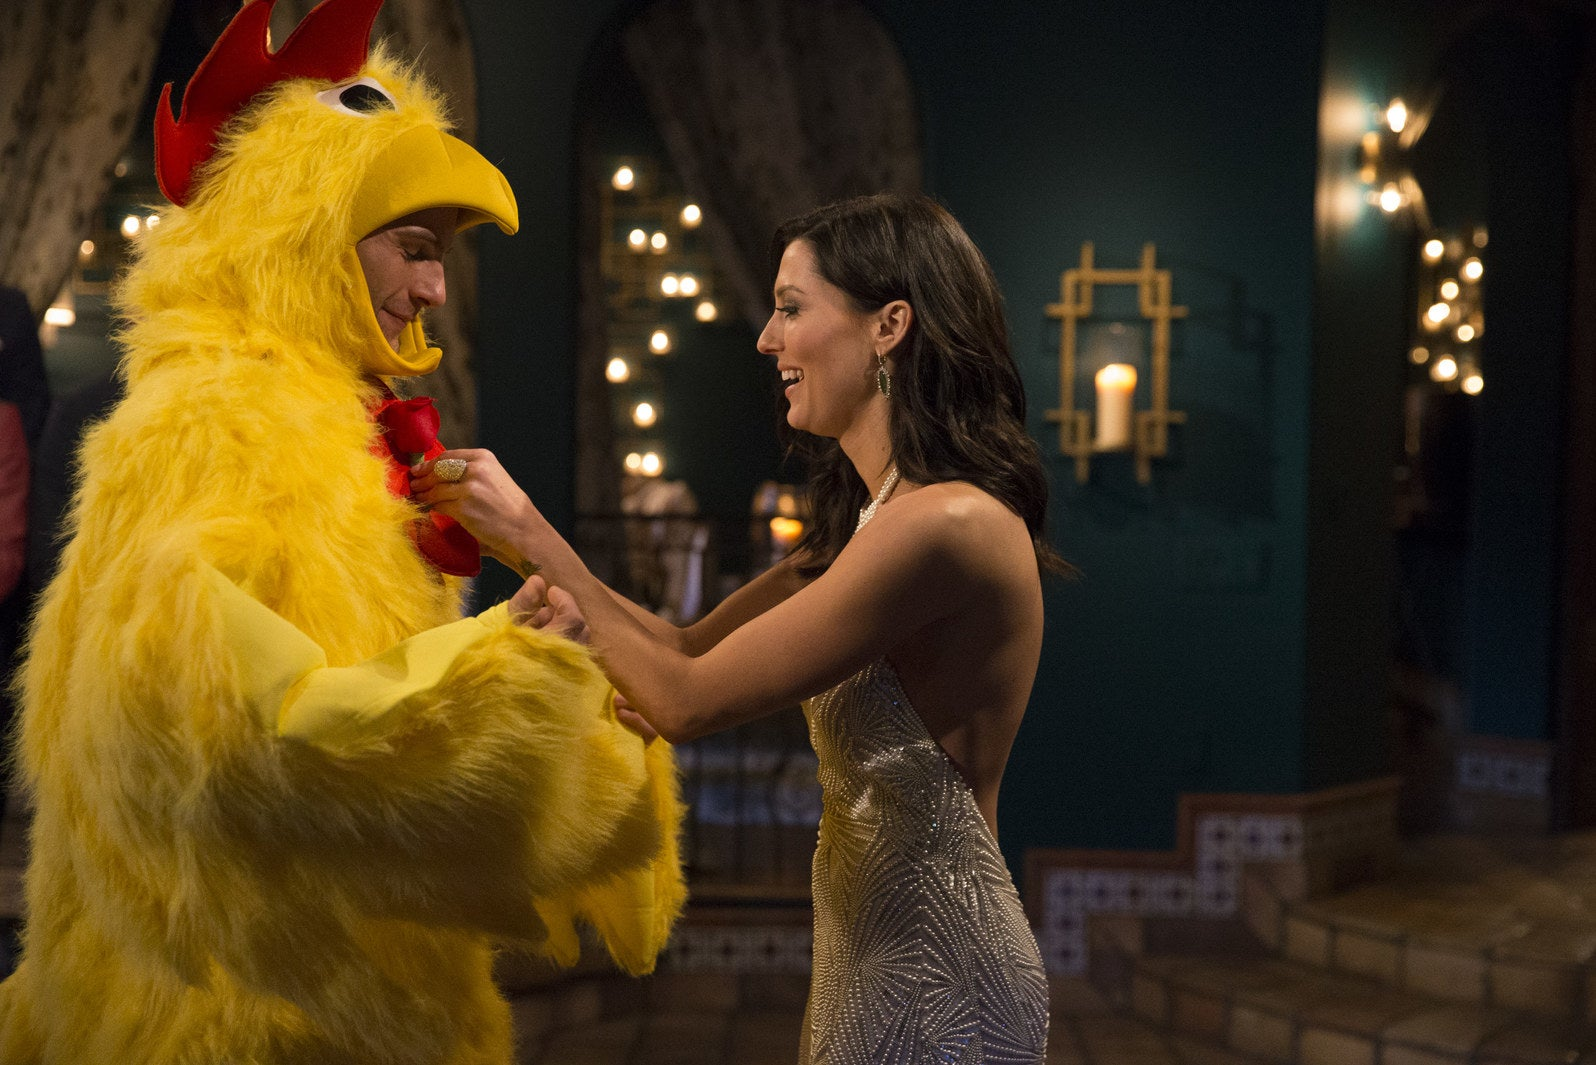 Becca gives a rose to David, who arrived wearing a chicken costume, during Episode 1.